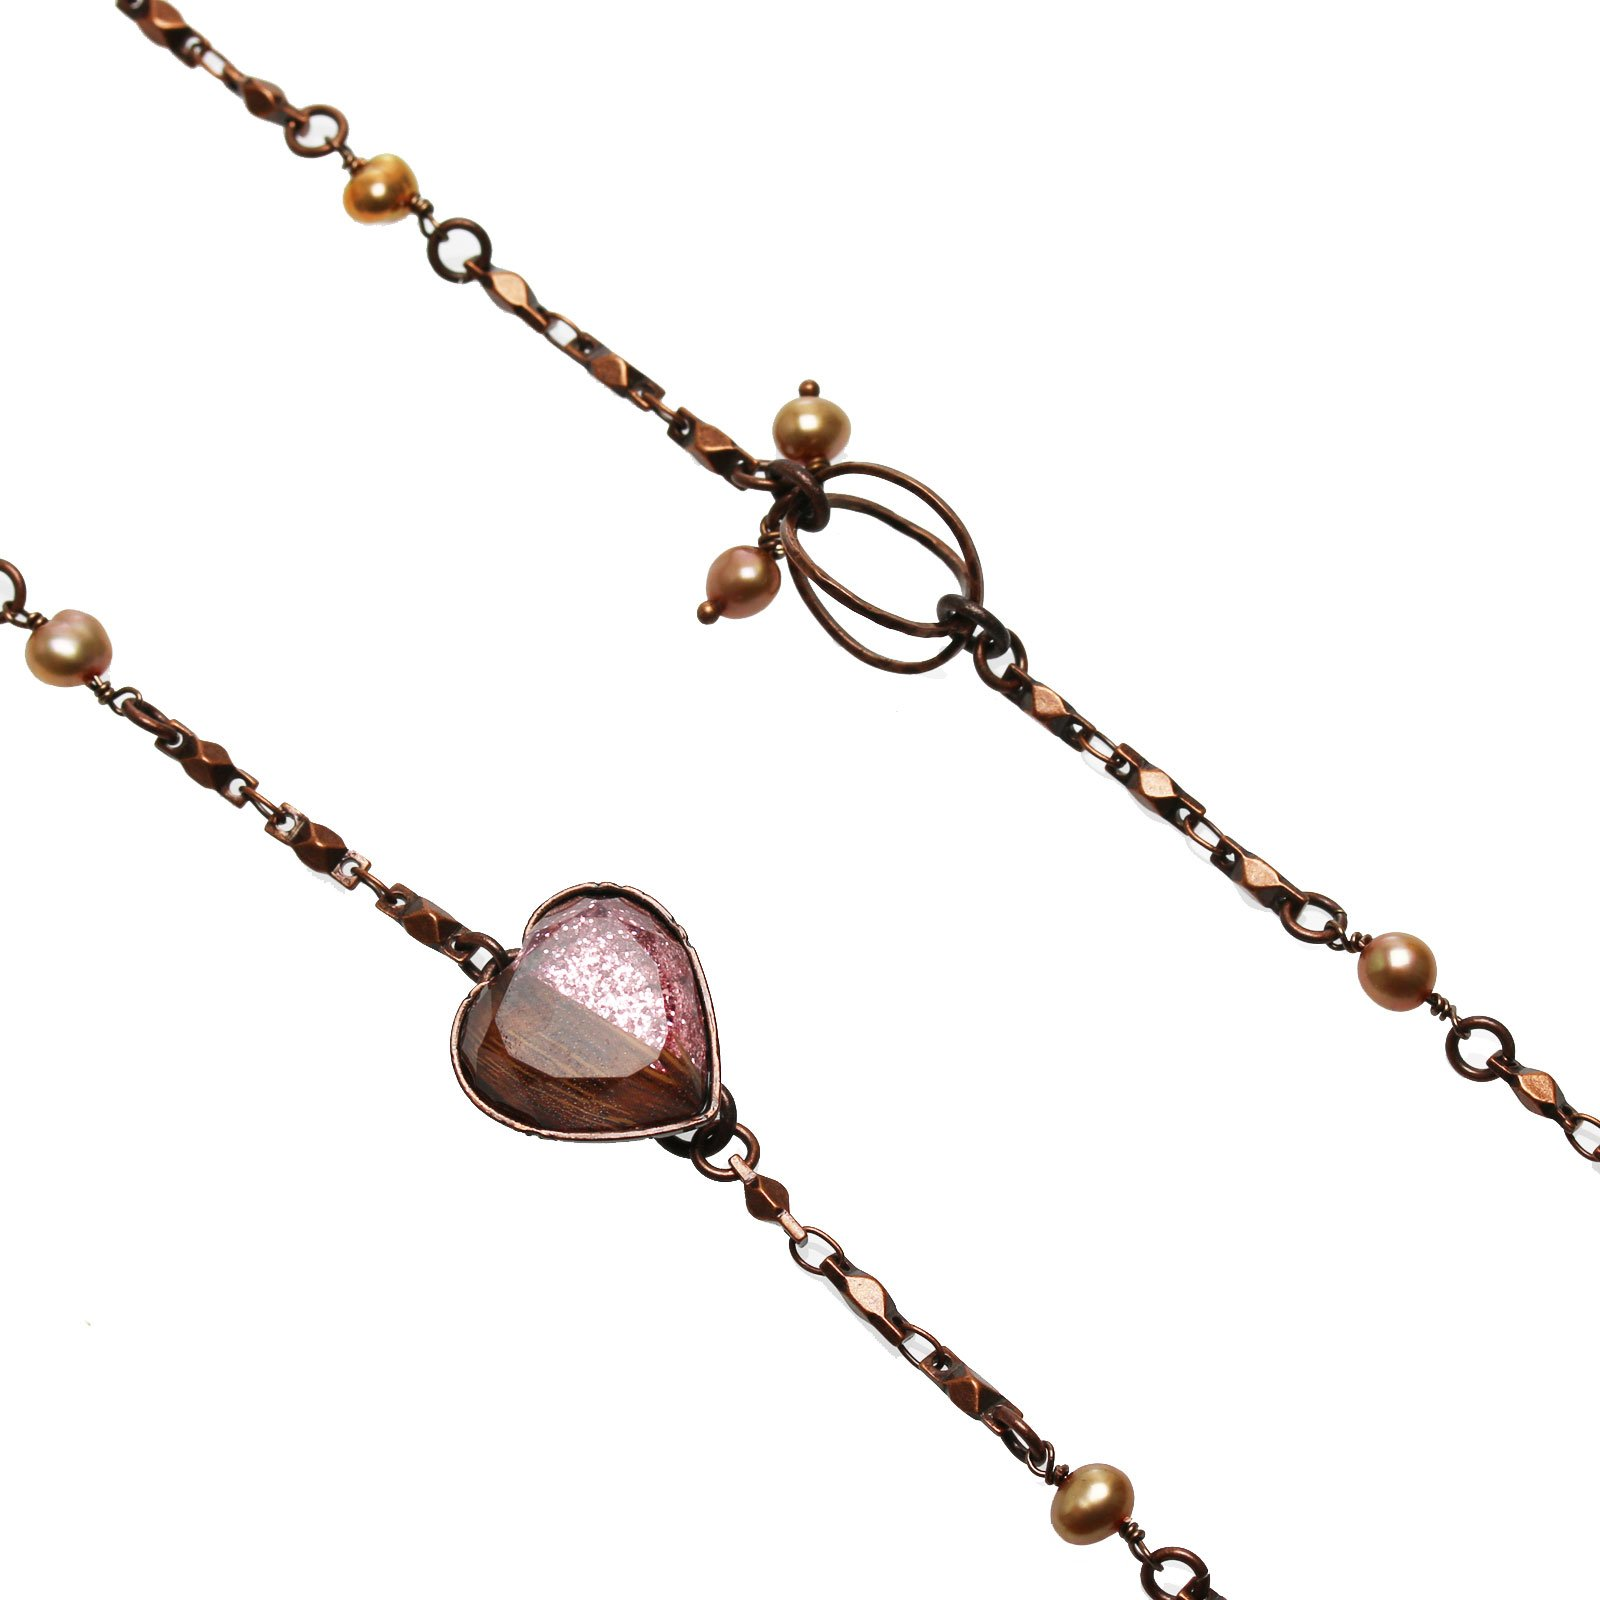 Tamarusan Glasses Chain Strap Pink Lame Heart Antique Finished Freshwater Pearl Original Resin